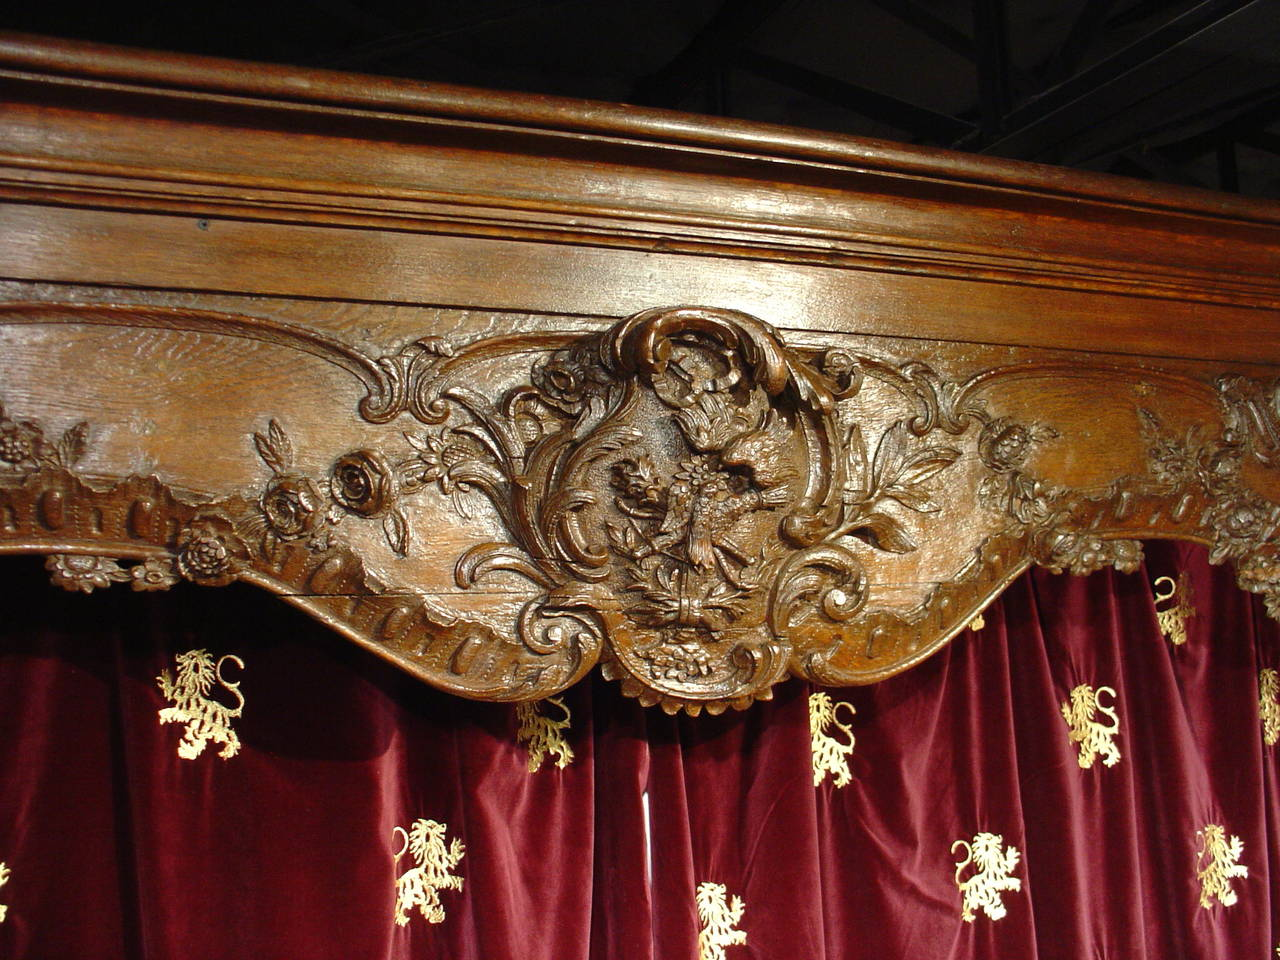 Oak Antique French Boiserie Door Surround from the 1700s For Sale